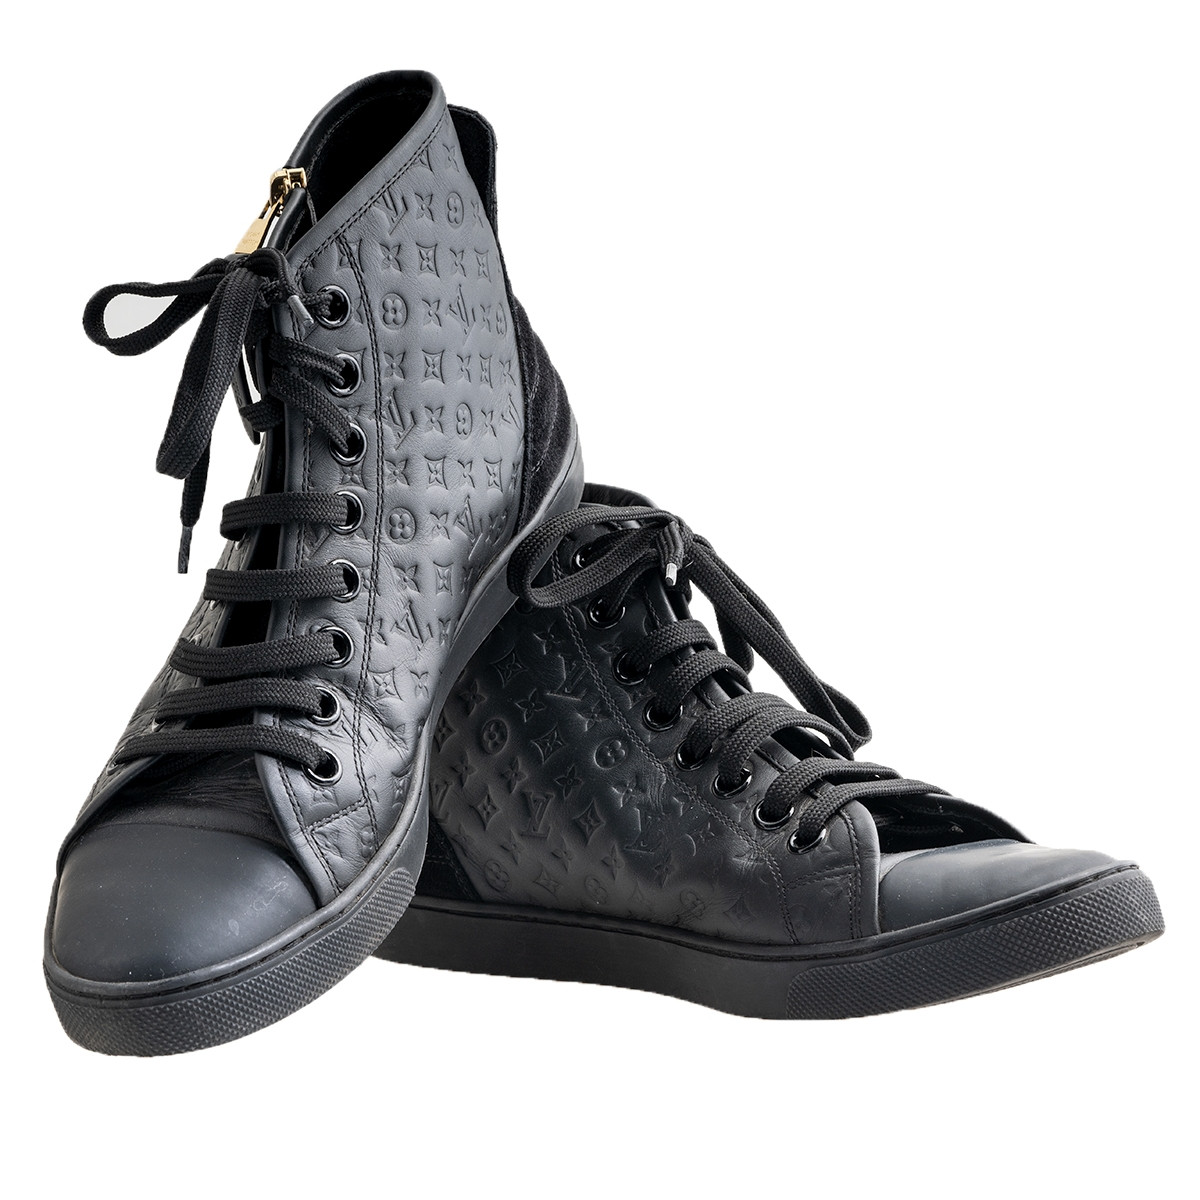 Vintage Louis Vuitton Monogram High Top Sneakers